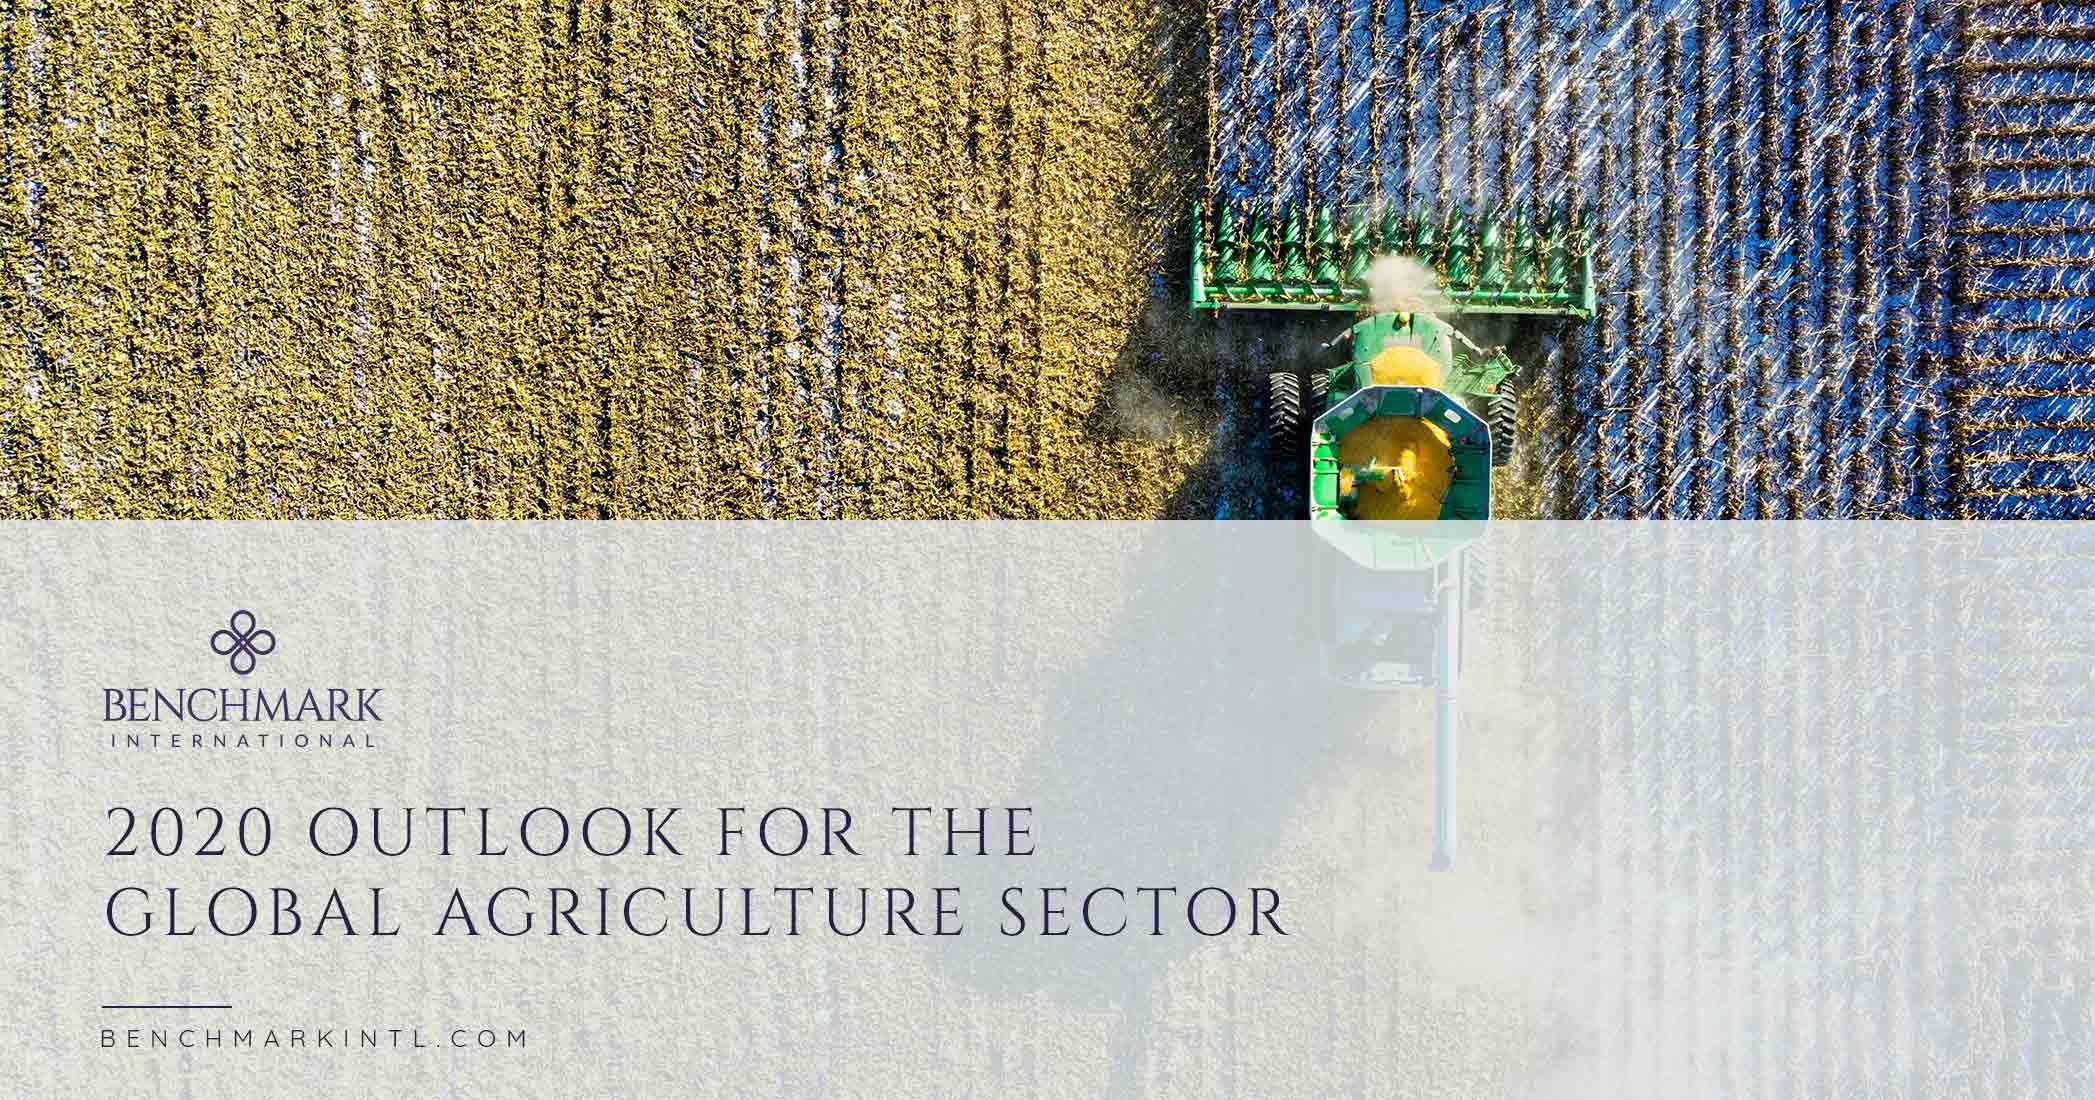 2020 Outlook For The Global Agriculture Sector